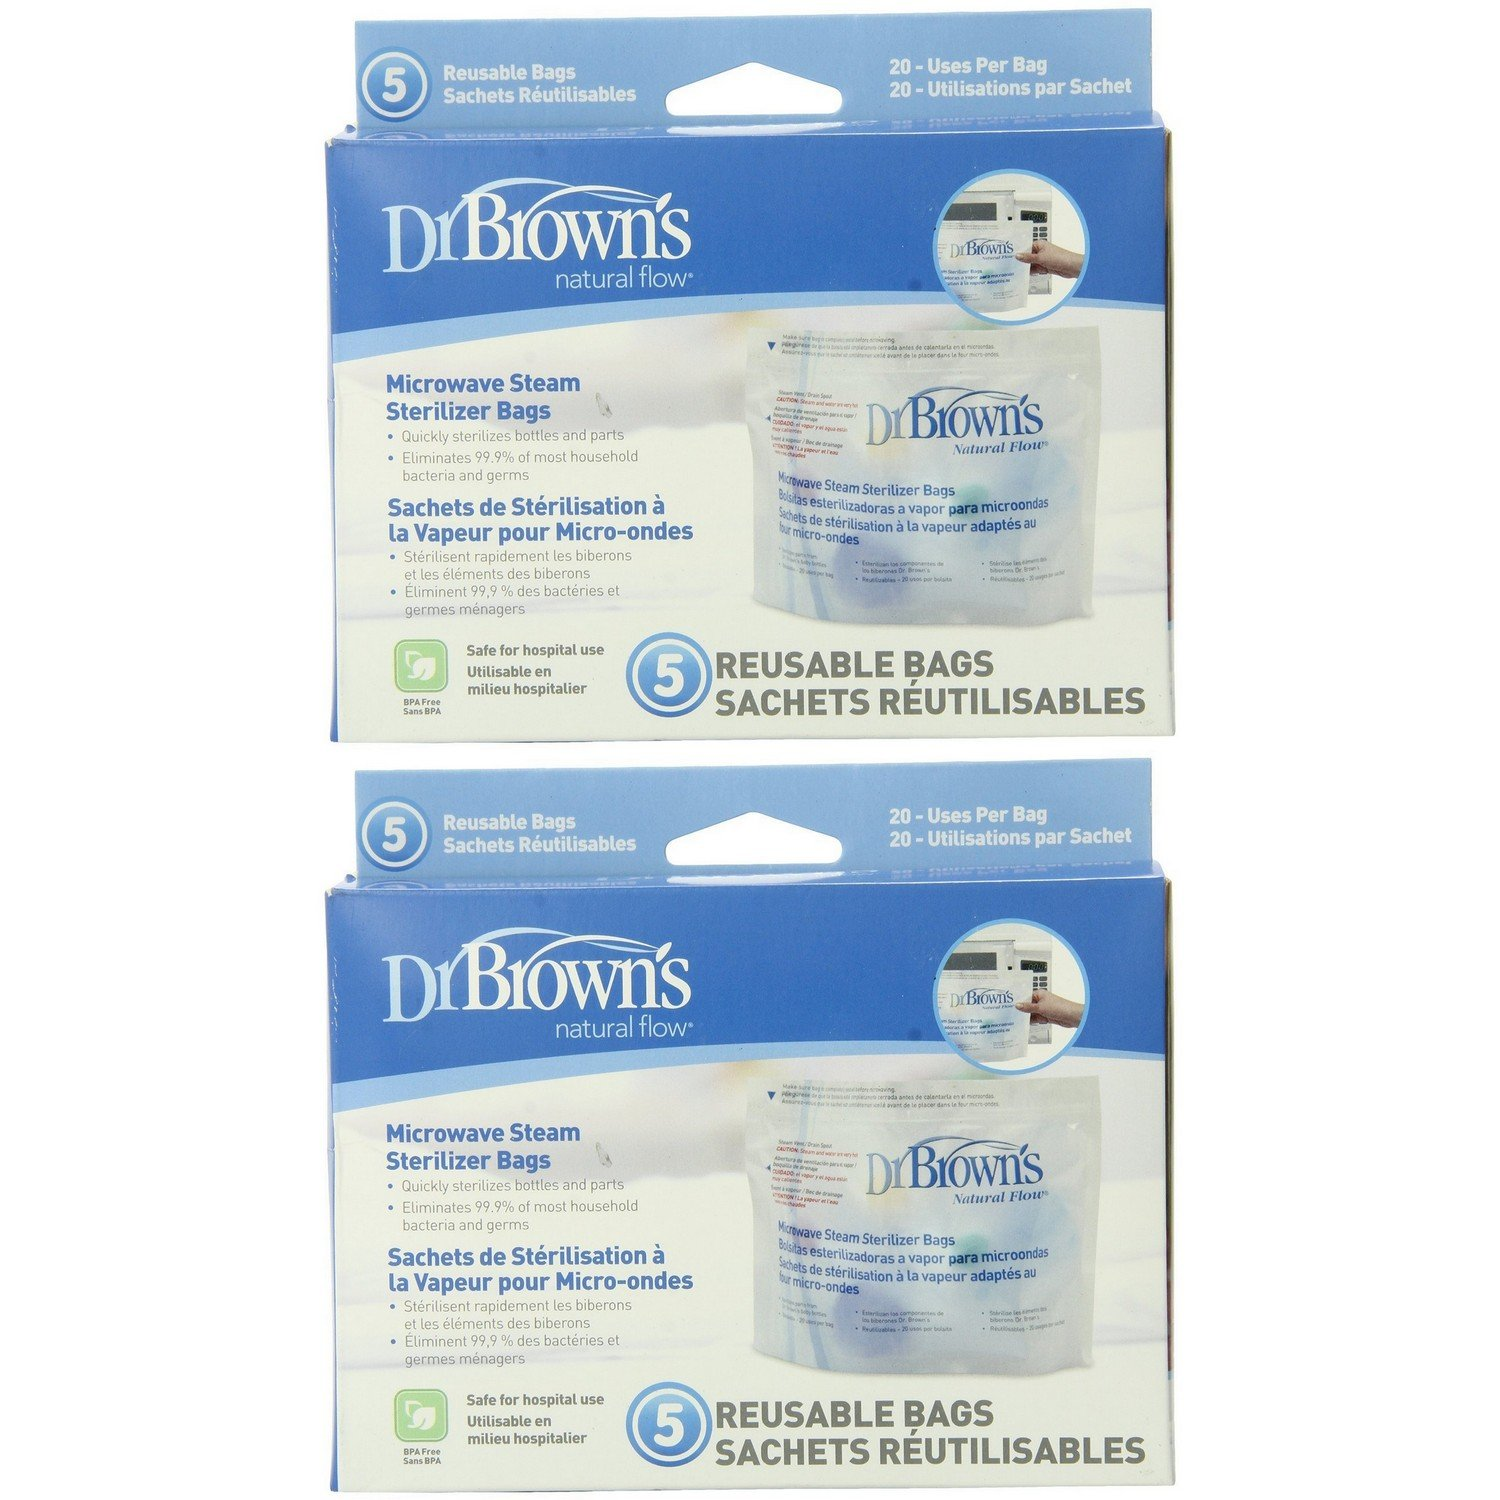 Dr. Brown's Microwave Steam Sterilizer Bags - 2 Packs of 5 Count = 10 Bags by Dr. Brown's